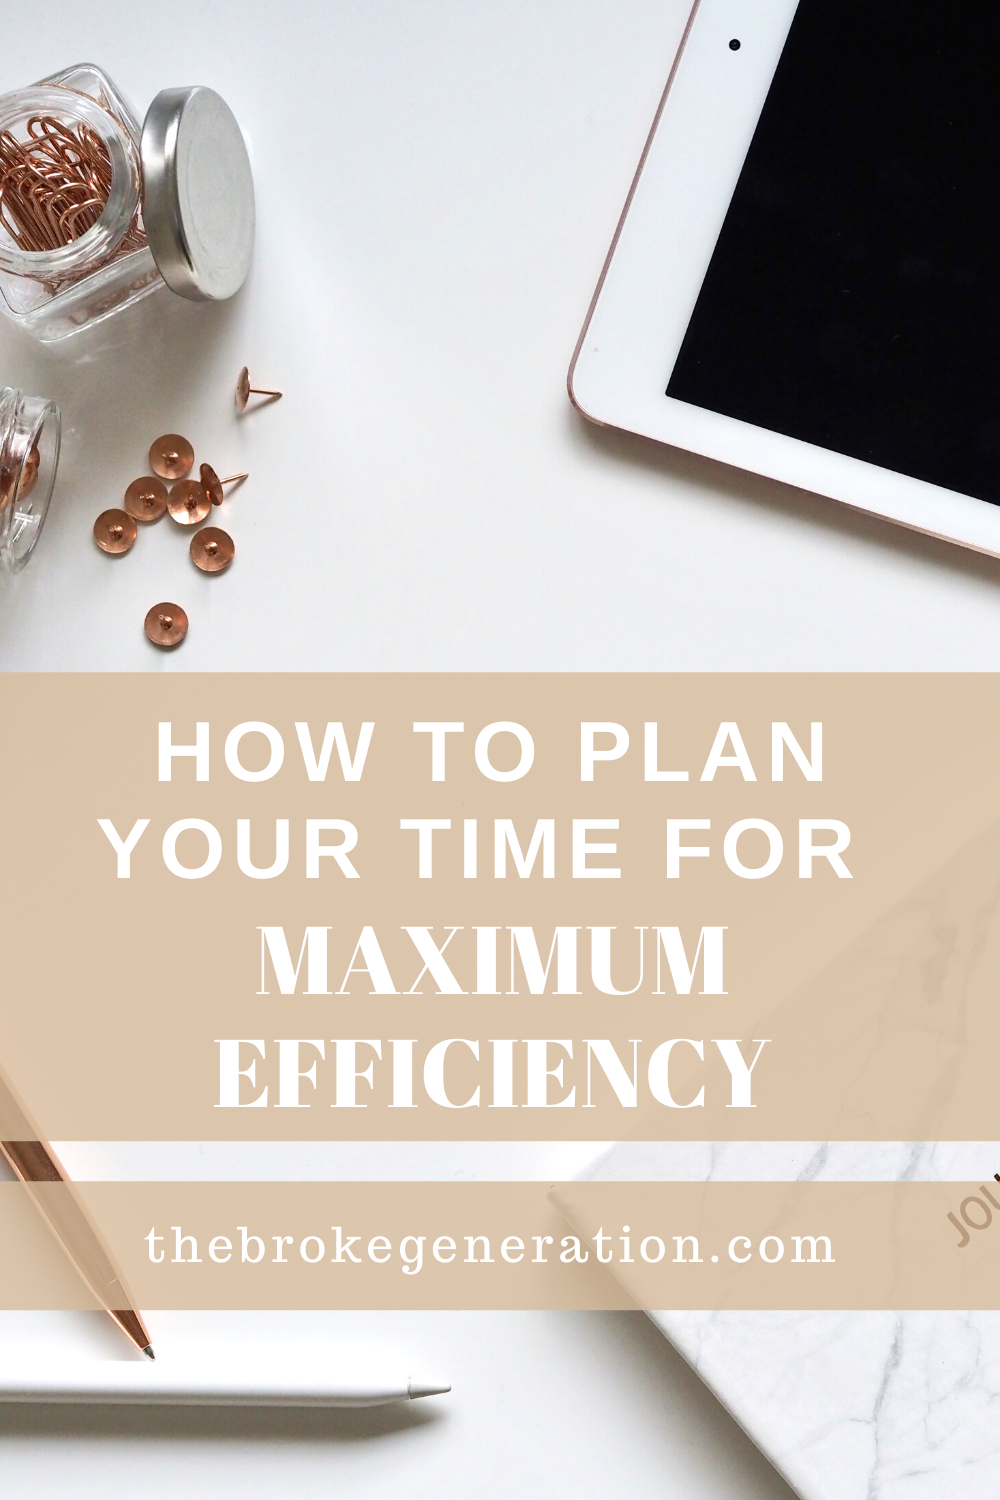 How to Plan Your Time for Maximum Efficiency